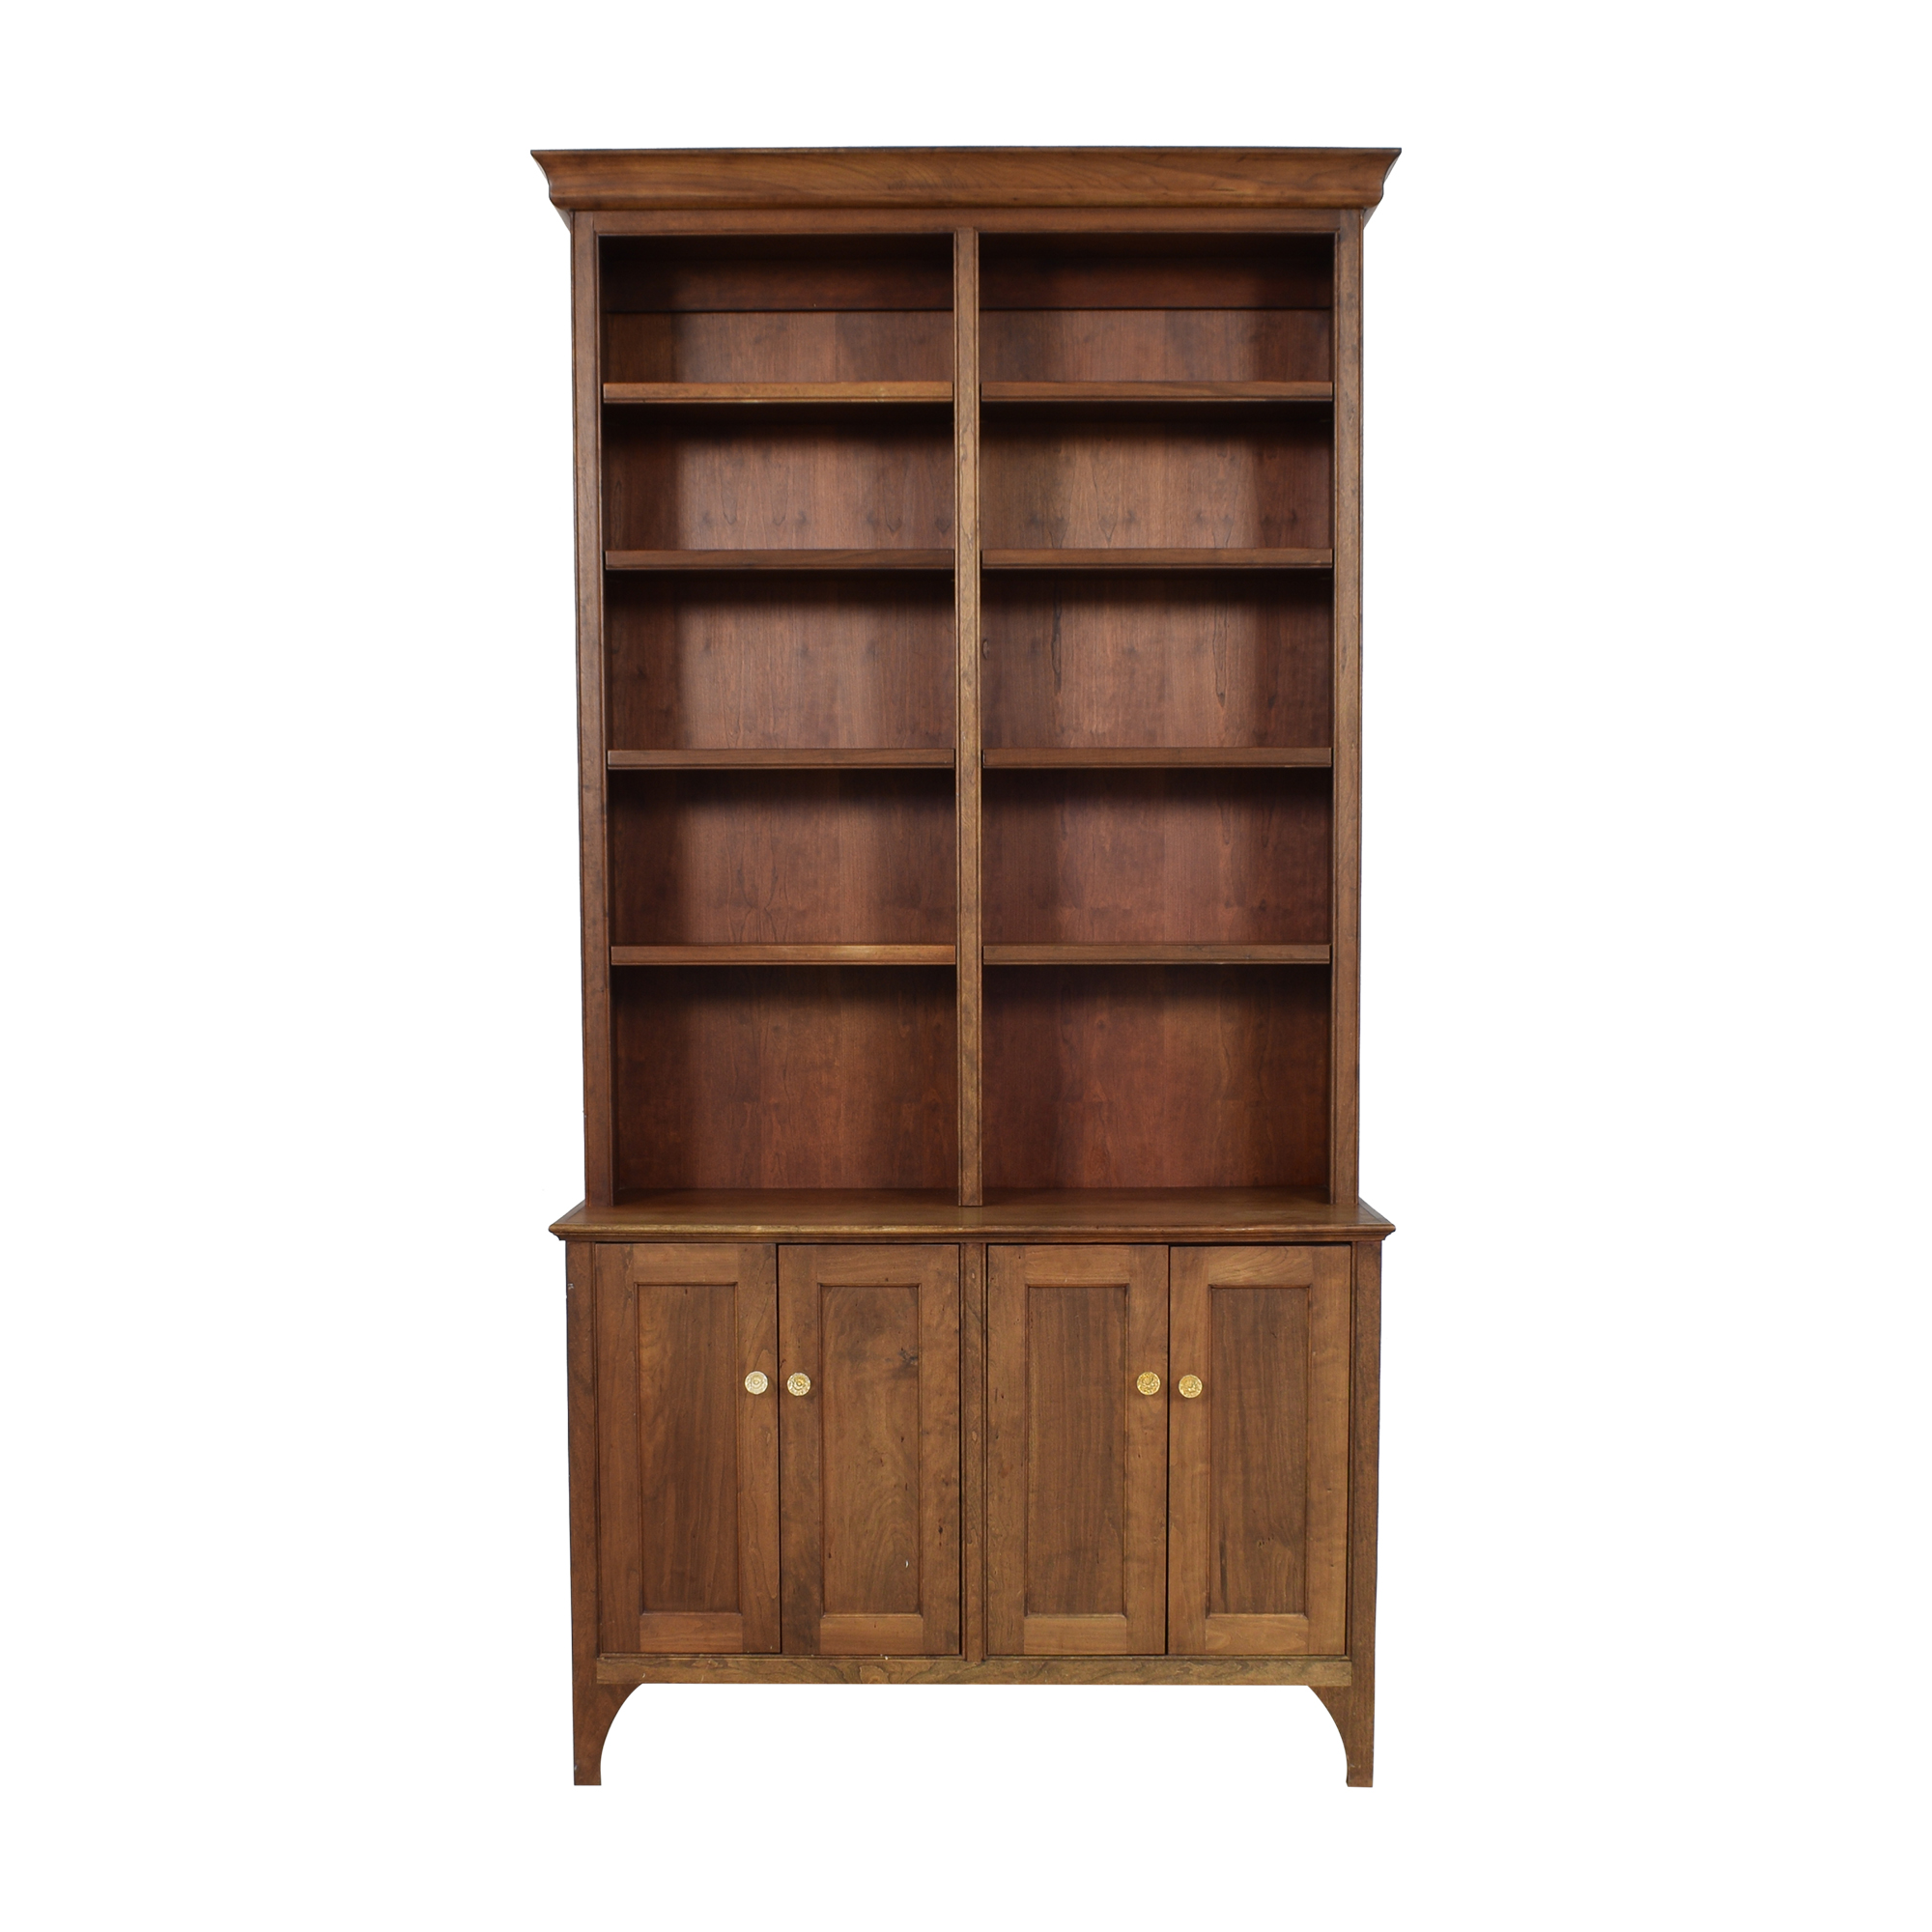 shop Vintage Cabinet with Bookshelf